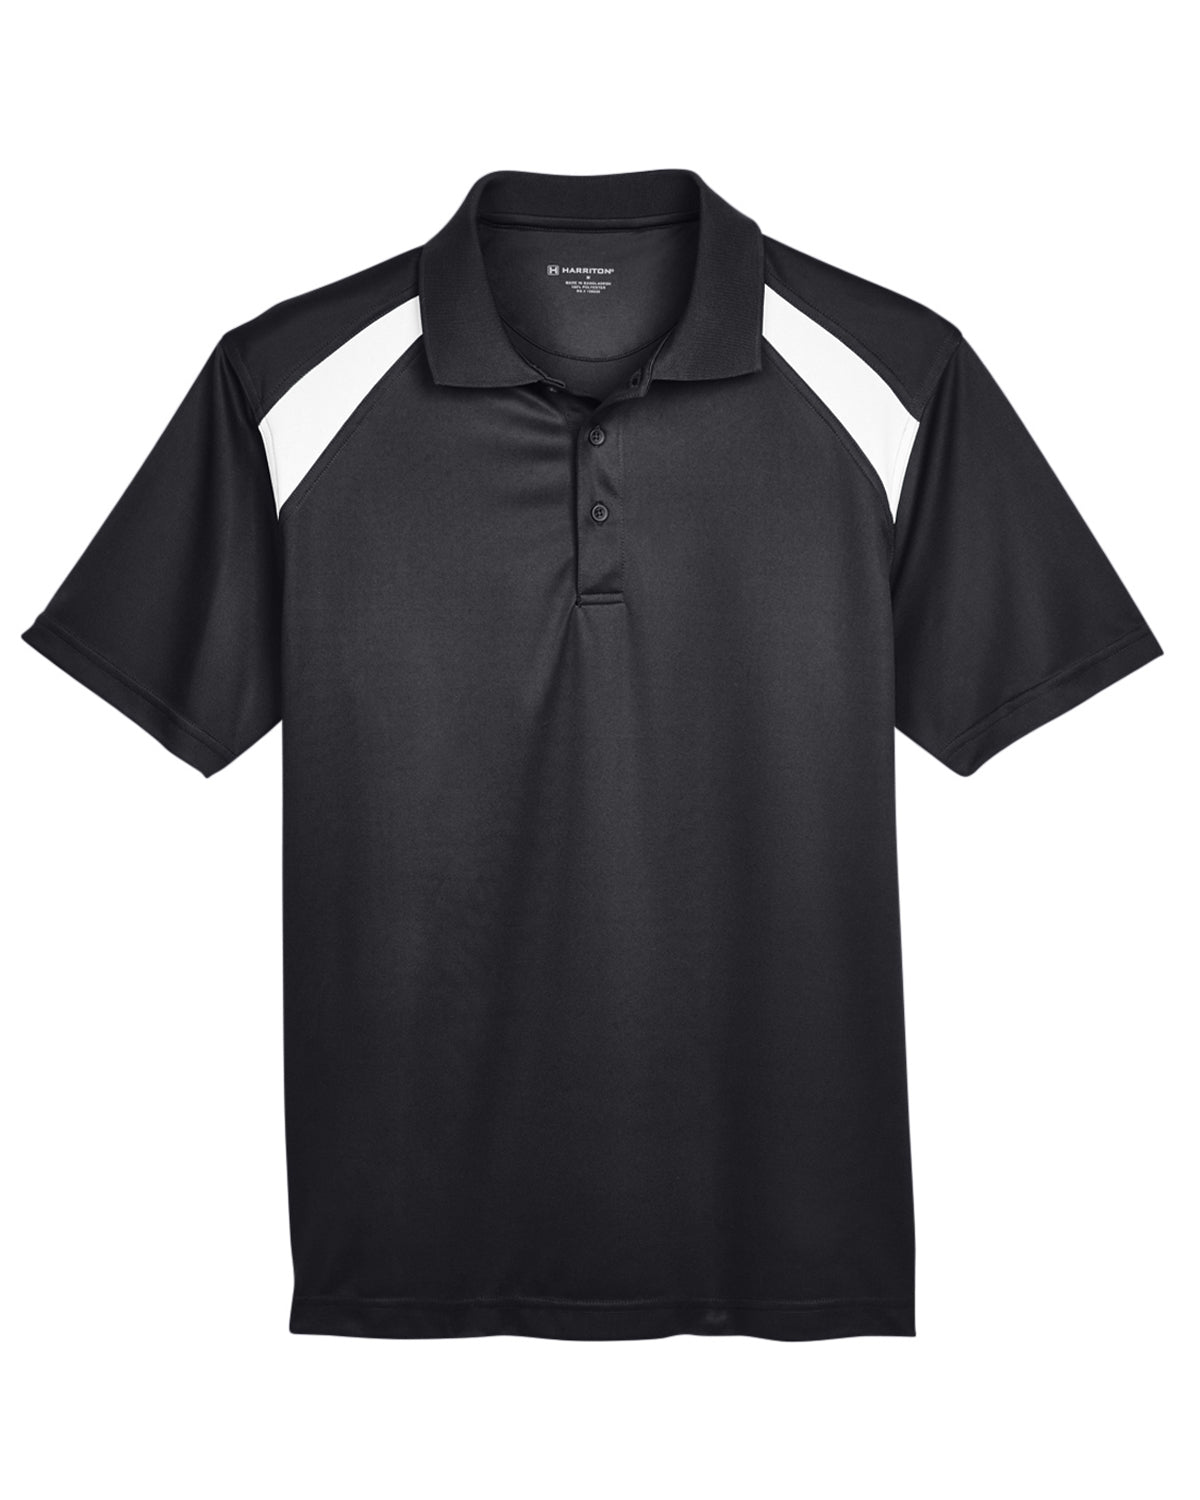 Drifit Colorblock Polo